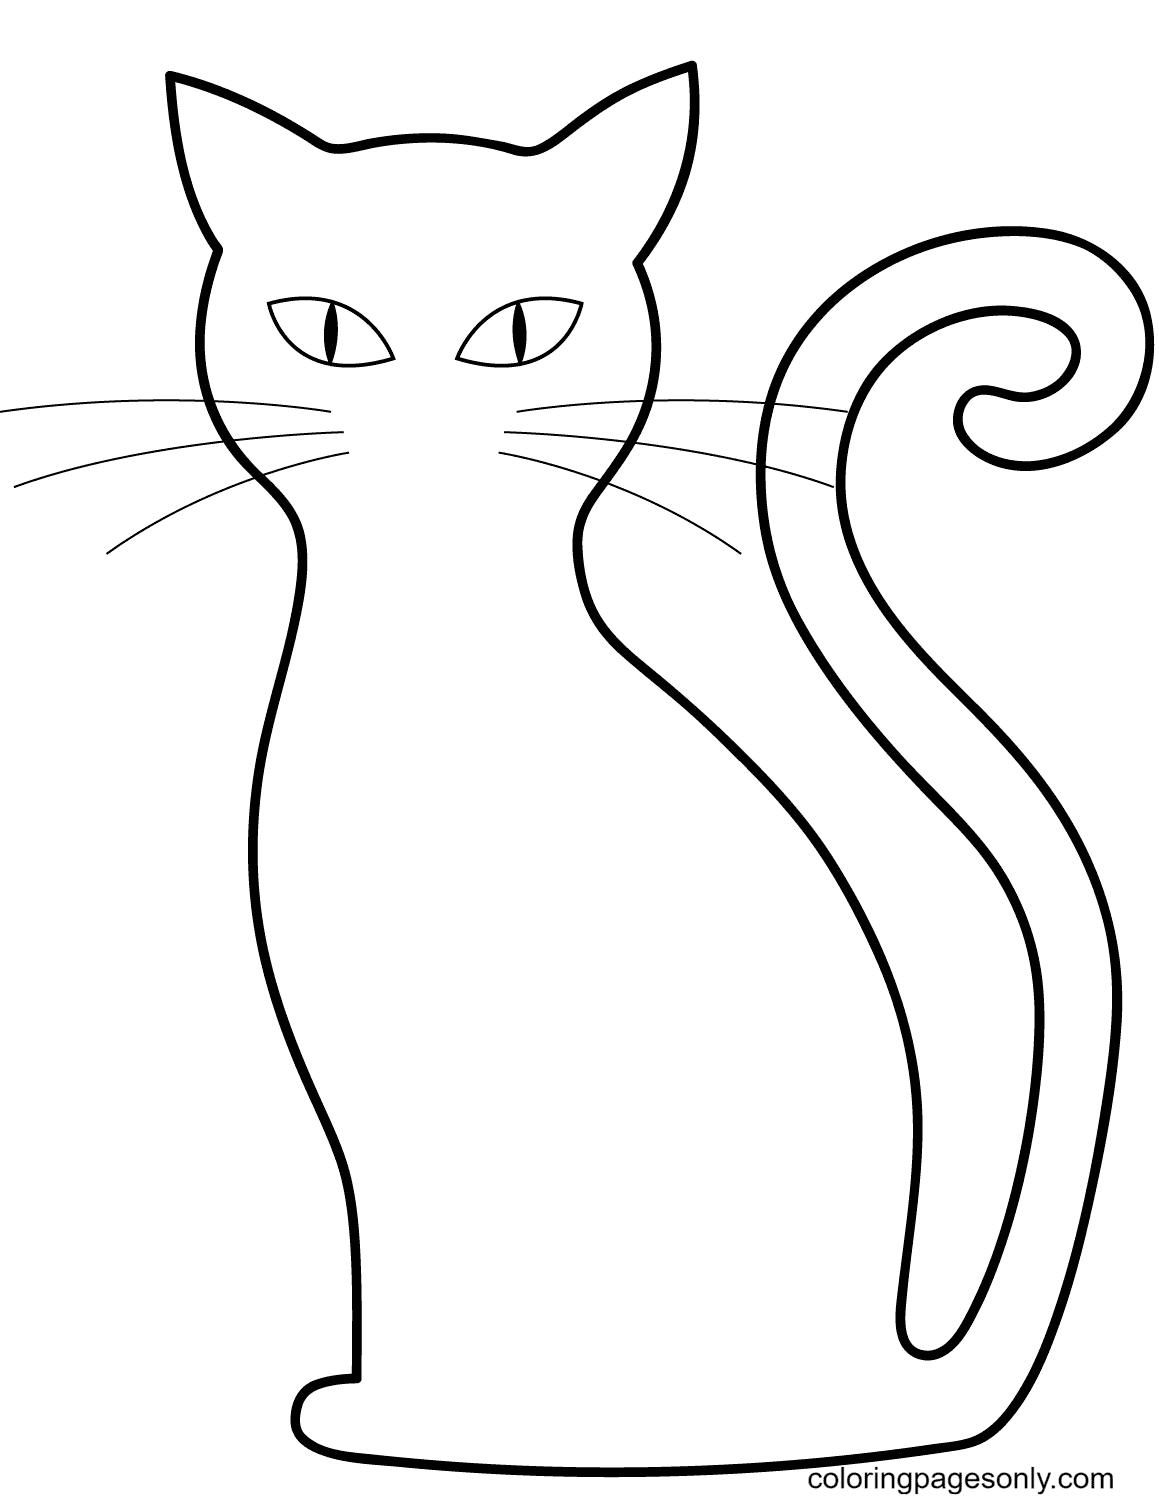 Simple Black Cat Coloring Page